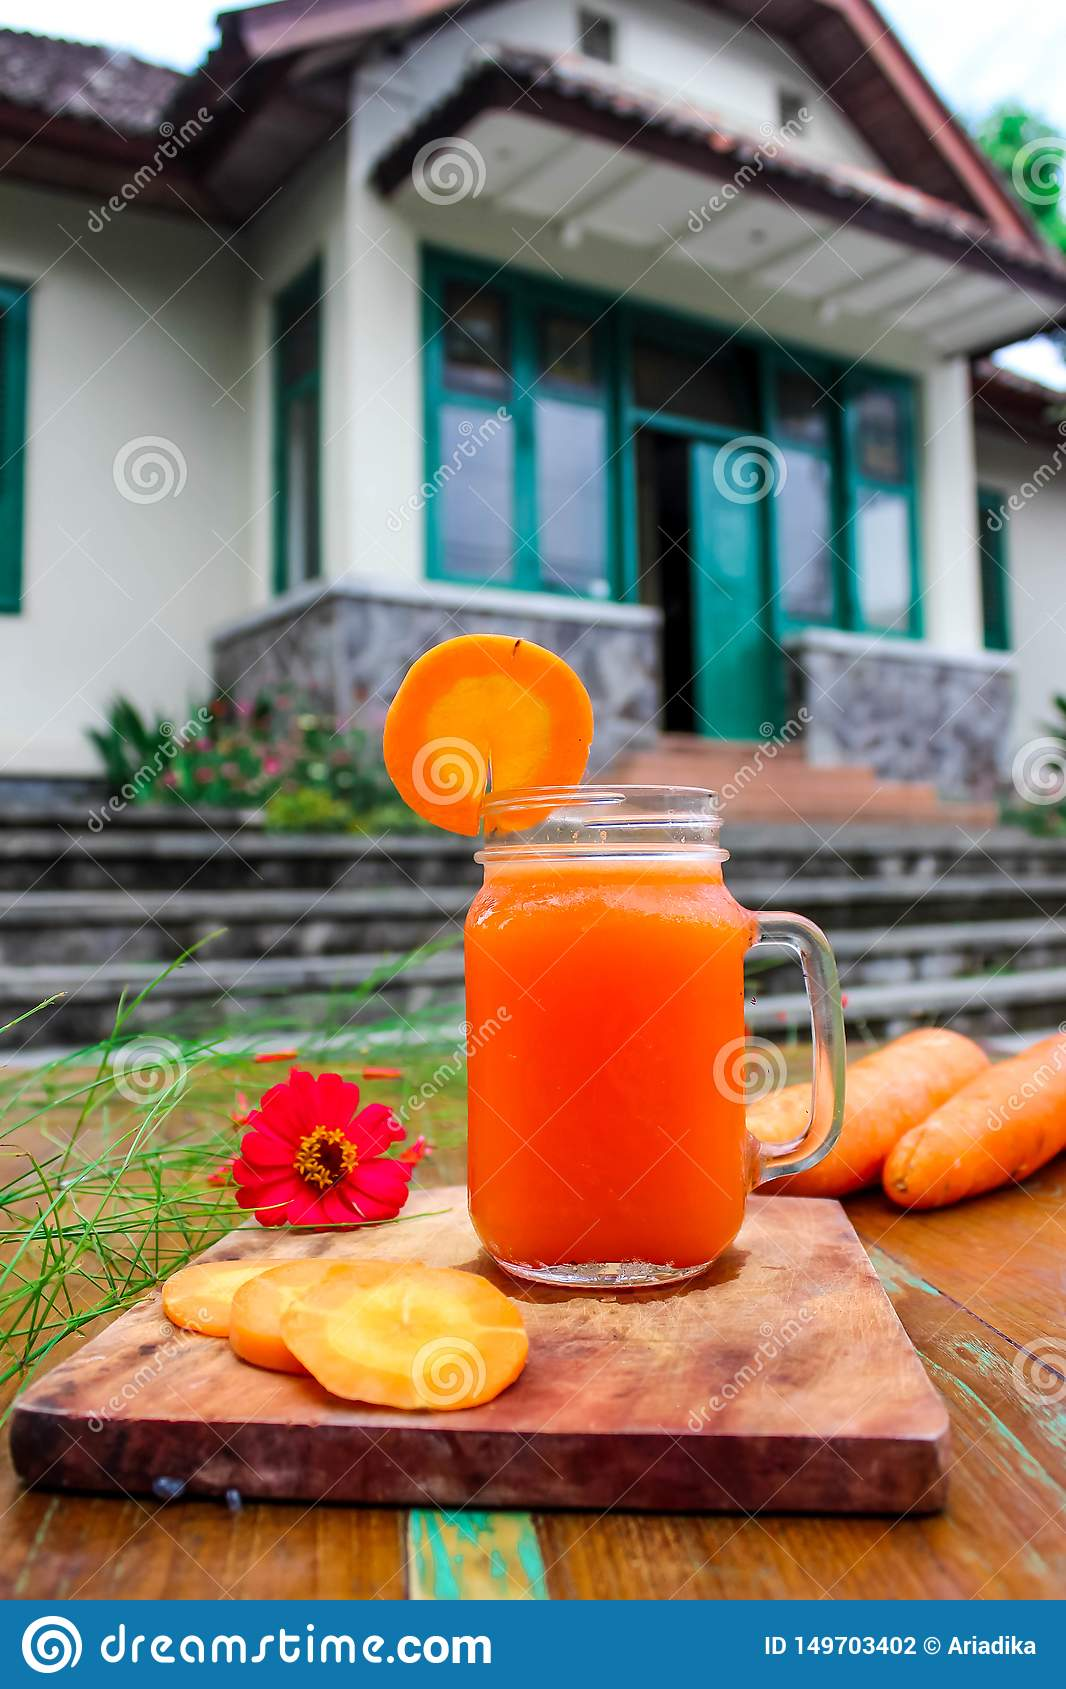 Homemade fresh carrot juice